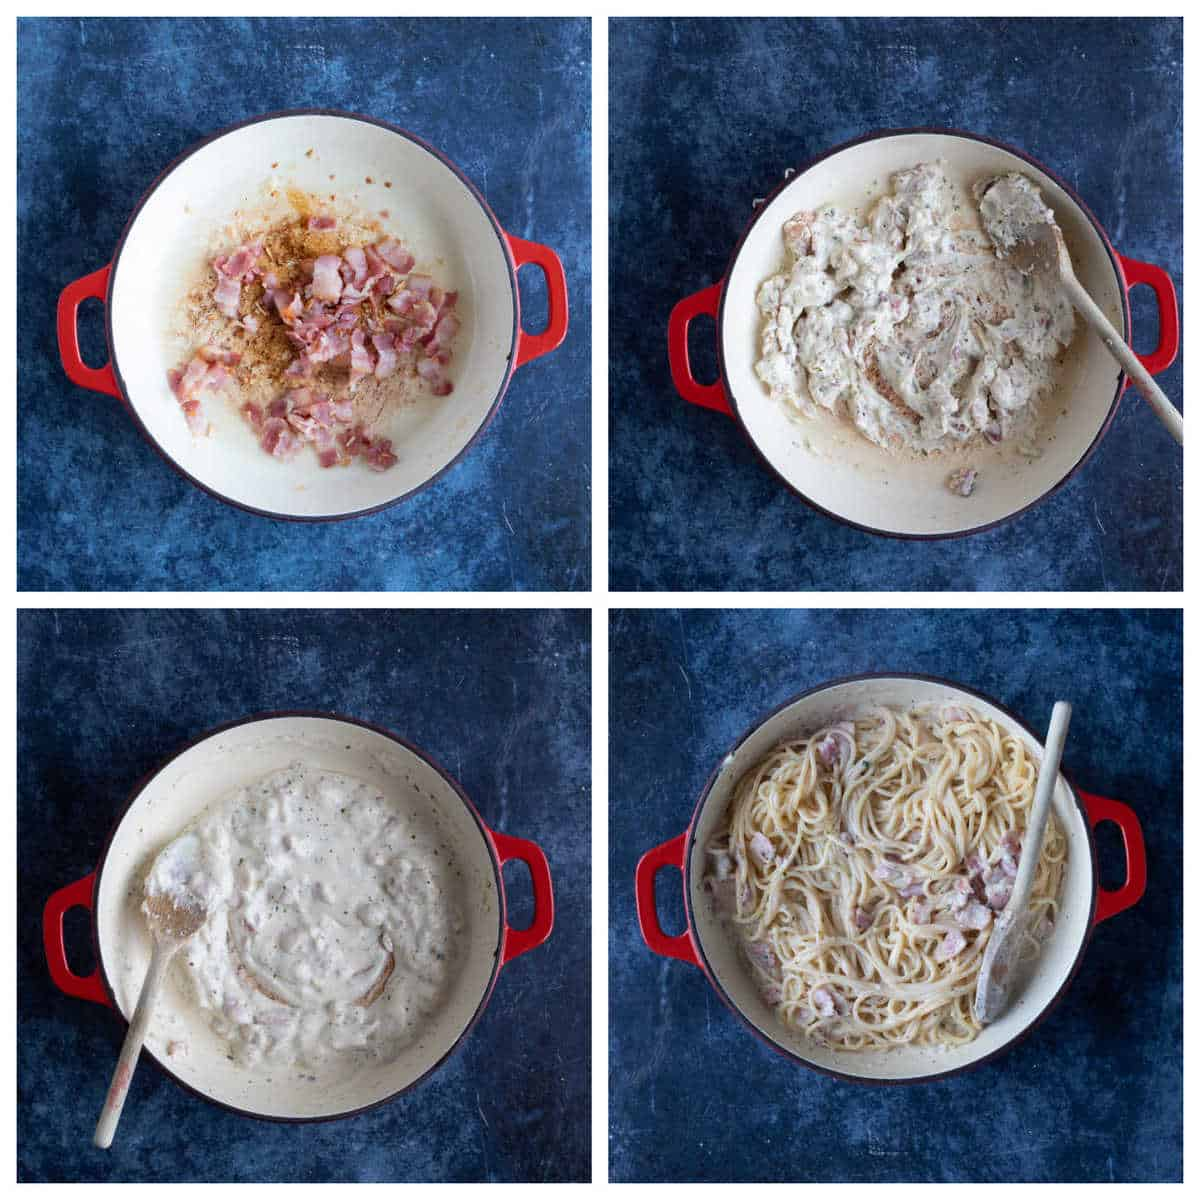 Step by step photo instructions for making Boursin Pasta.